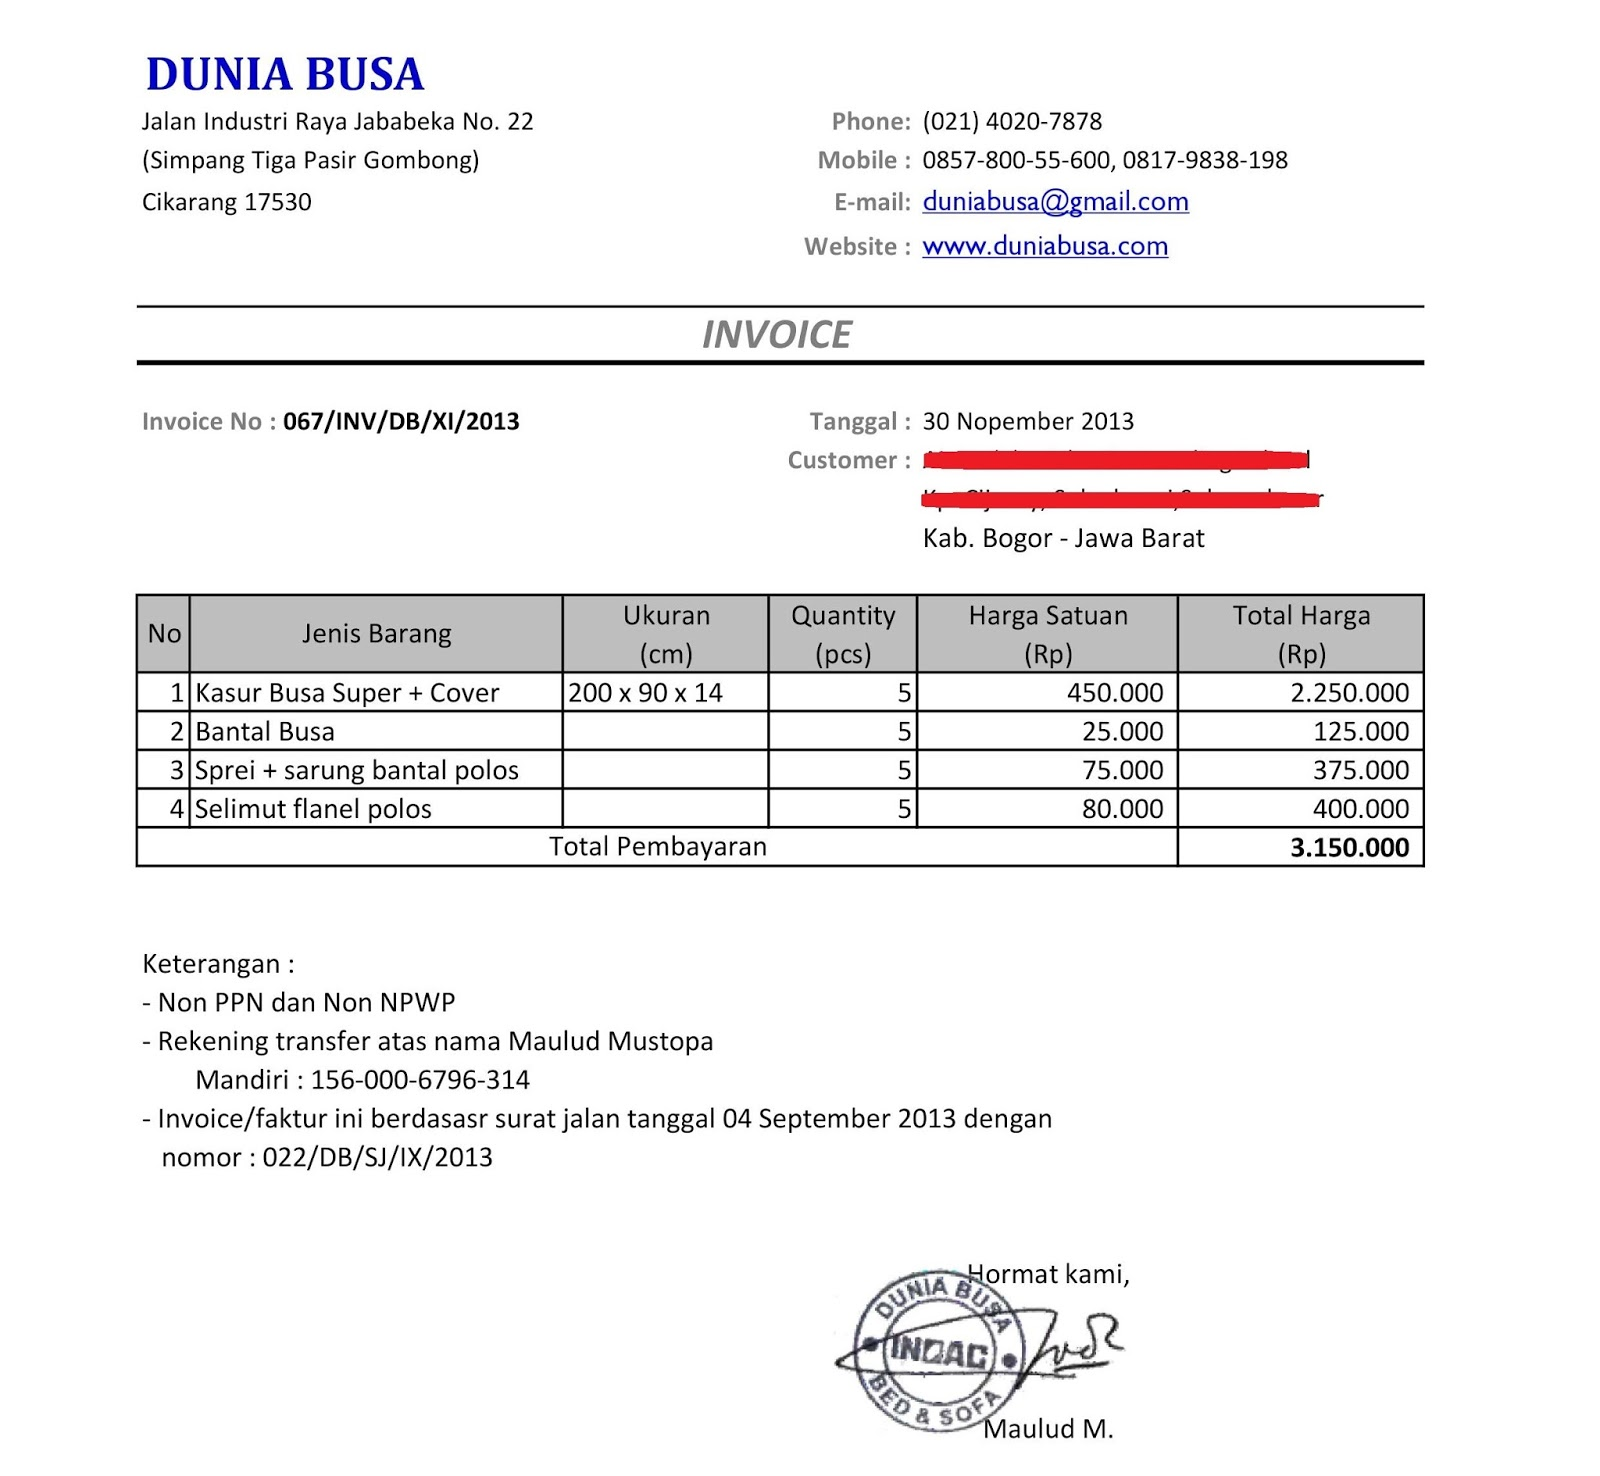 Opposenewapstandardsus  Outstanding Free Invoice Online  Create Invoice Online  Invoice Template  With Excellent Contoh Format Invoice Atau Surat Tagihan  Brankas Arsip  Free Invoice Online With Cute Mazda Cx  Invoice Price Also Work Order Invoice In Addition Invoice Template In Excel And Simple Invoice Template Excel As Well As Send An Invoice Through Paypal Additionally Sliq Invoicing From Sklepco With Opposenewapstandardsus  Excellent Free Invoice Online  Create Invoice Online  Invoice Template  With Cute Contoh Format Invoice Atau Surat Tagihan  Brankas Arsip  Free Invoice Online And Outstanding Mazda Cx  Invoice Price Also Work Order Invoice In Addition Invoice Template In Excel From Sklepco